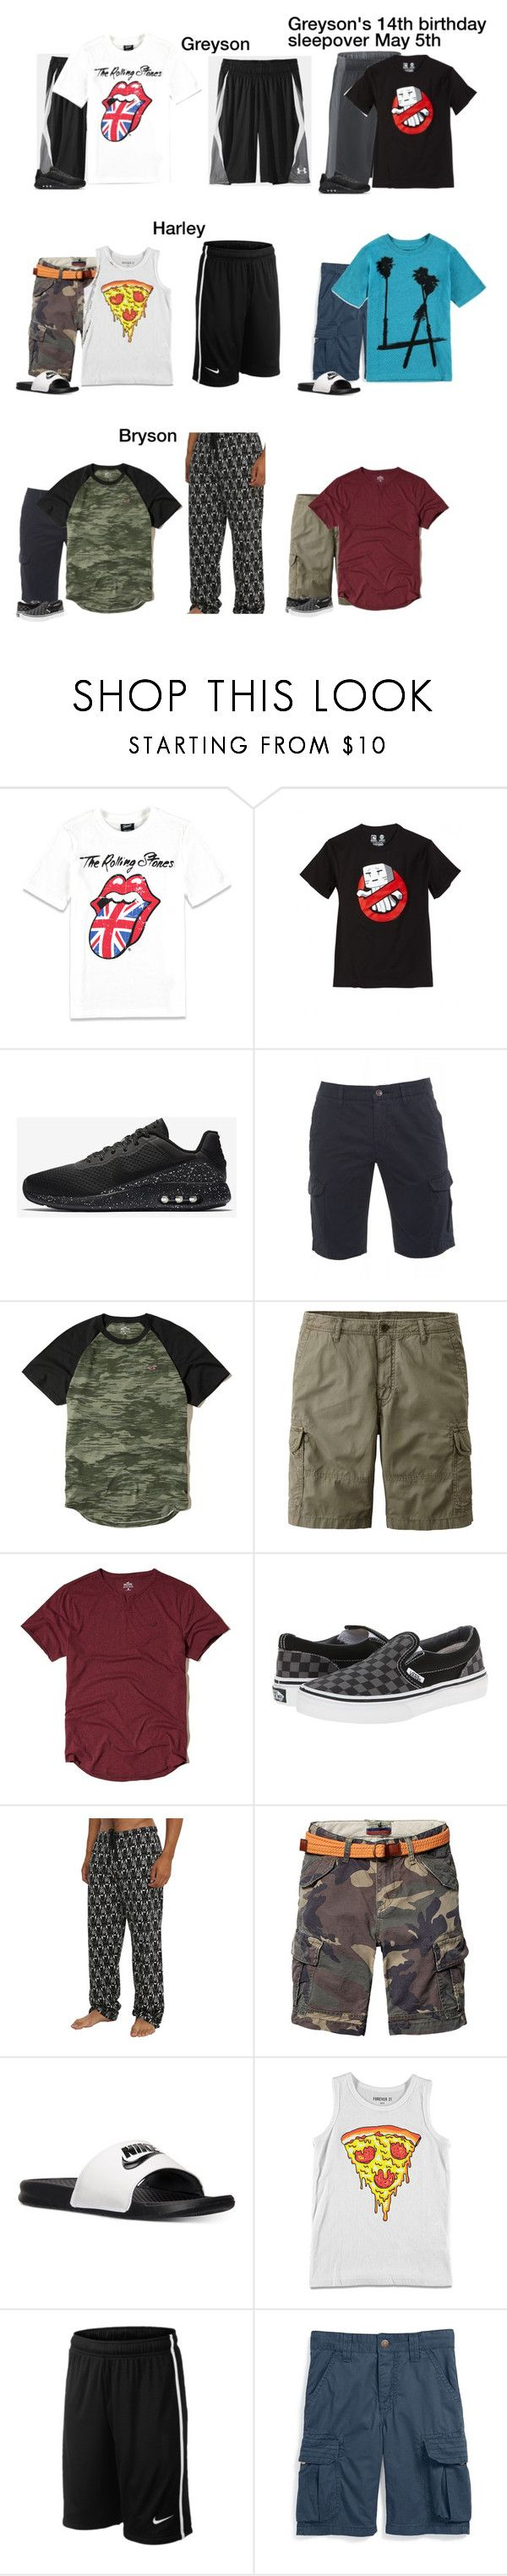 """""""-Stones/Hernandez's/Harleys"""" by our-poly-friends ❤ liked on Polyvore featuring Forever 21, NIKE, Minecraft, BOSS Orange, Hollister Co., Uniqlo, Vans, Disney, Scotch & Soda and men's fashion"""